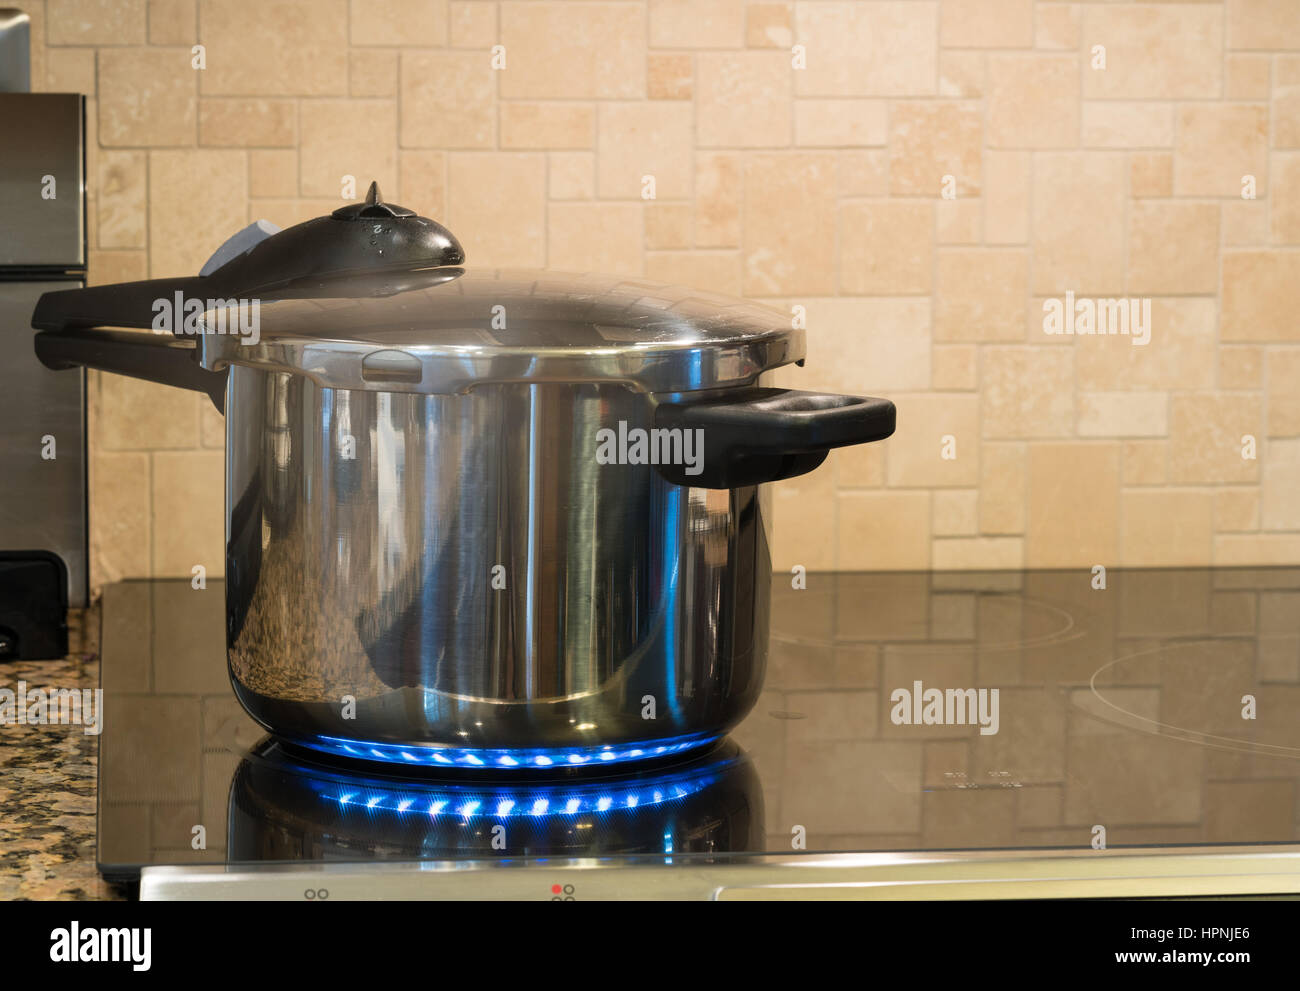 Stainless steel pressure cooker letting off steam on a modern induction cooking hob with glass top - Stock Image